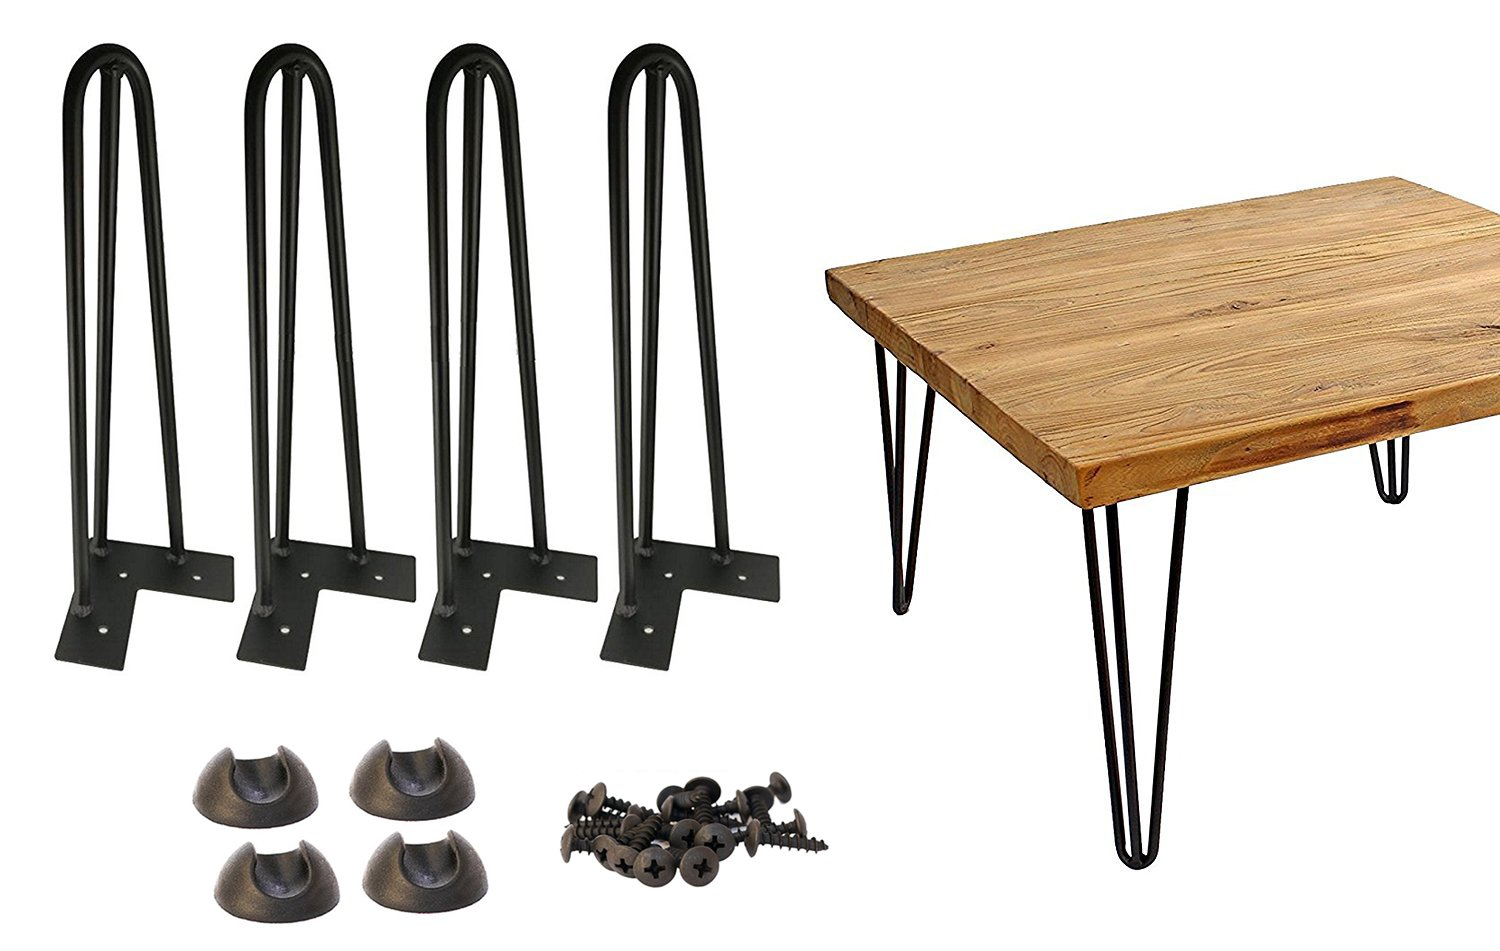 "16'' Hairpin Legs 3/8"" Thick Satin Black Three-Rod Mid Century Modern Set of 4 Heavy Duty Metal Table Legs w Wood Screws&Protector"